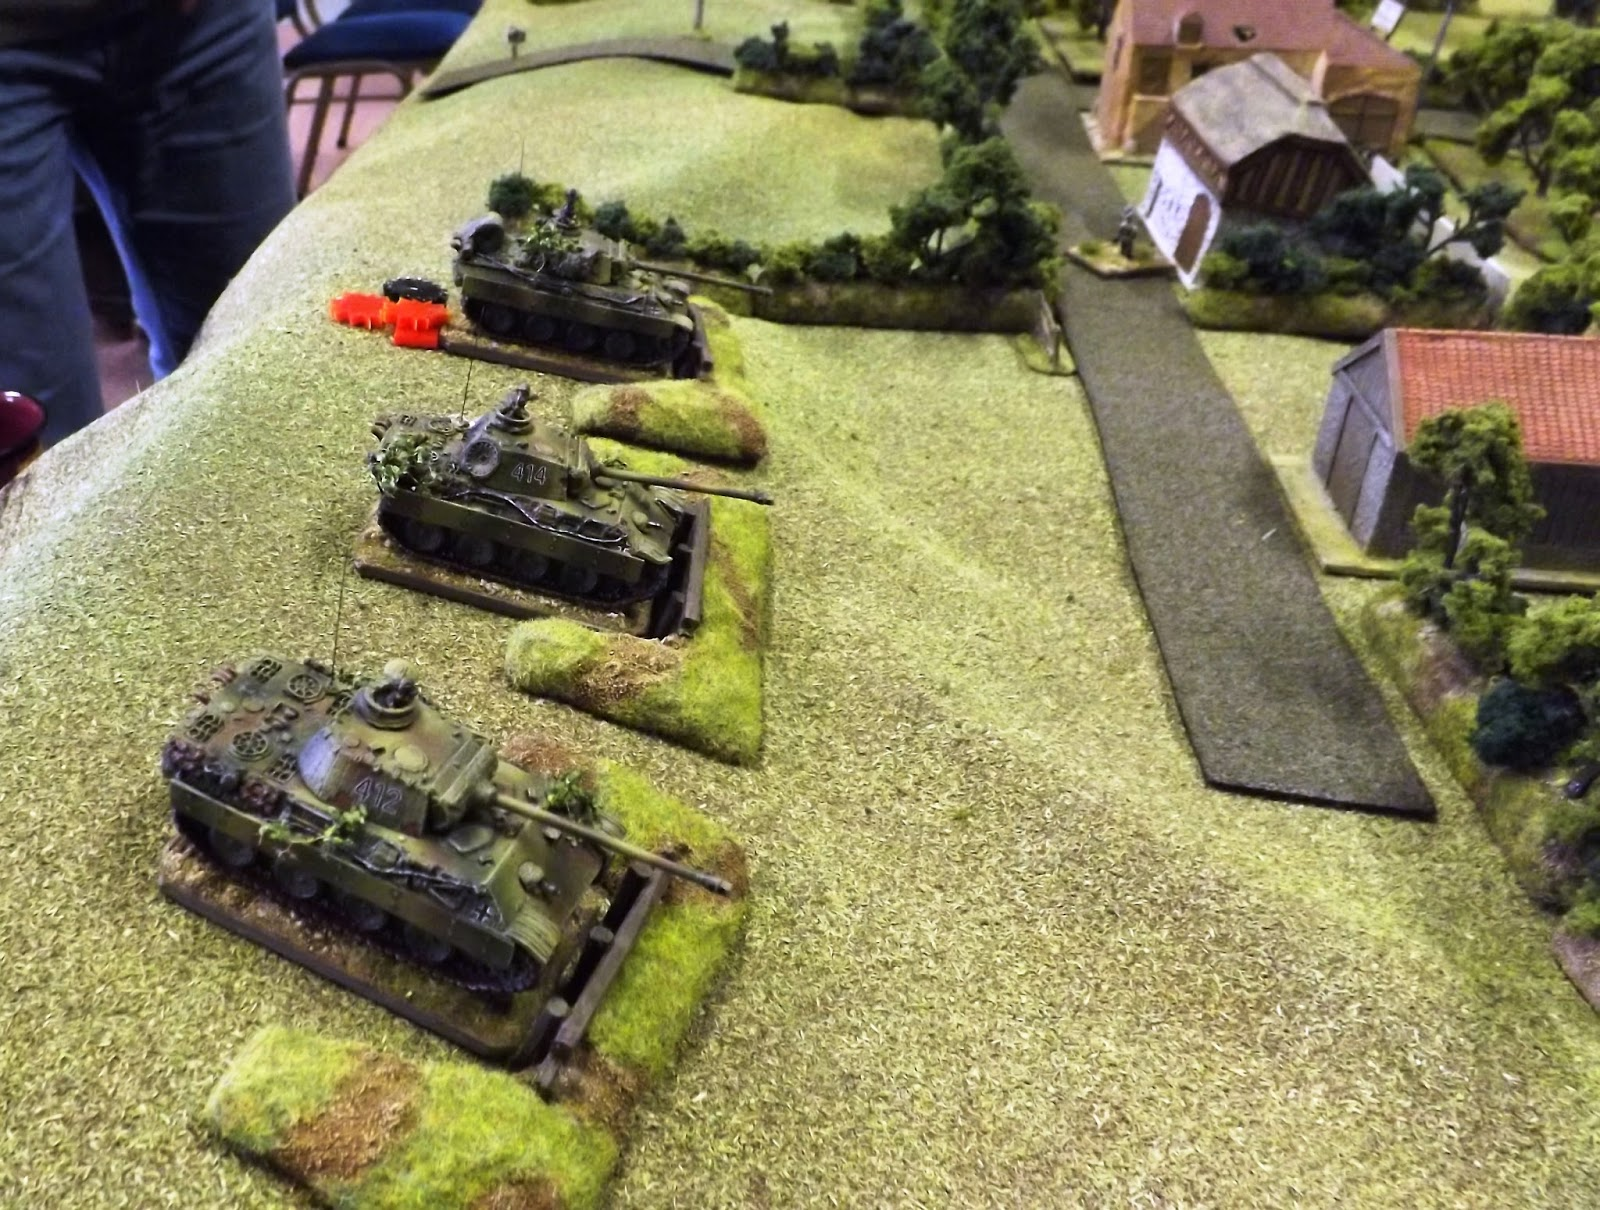 The dug in Panther platoon provided valuable support to their infantry in the farm area